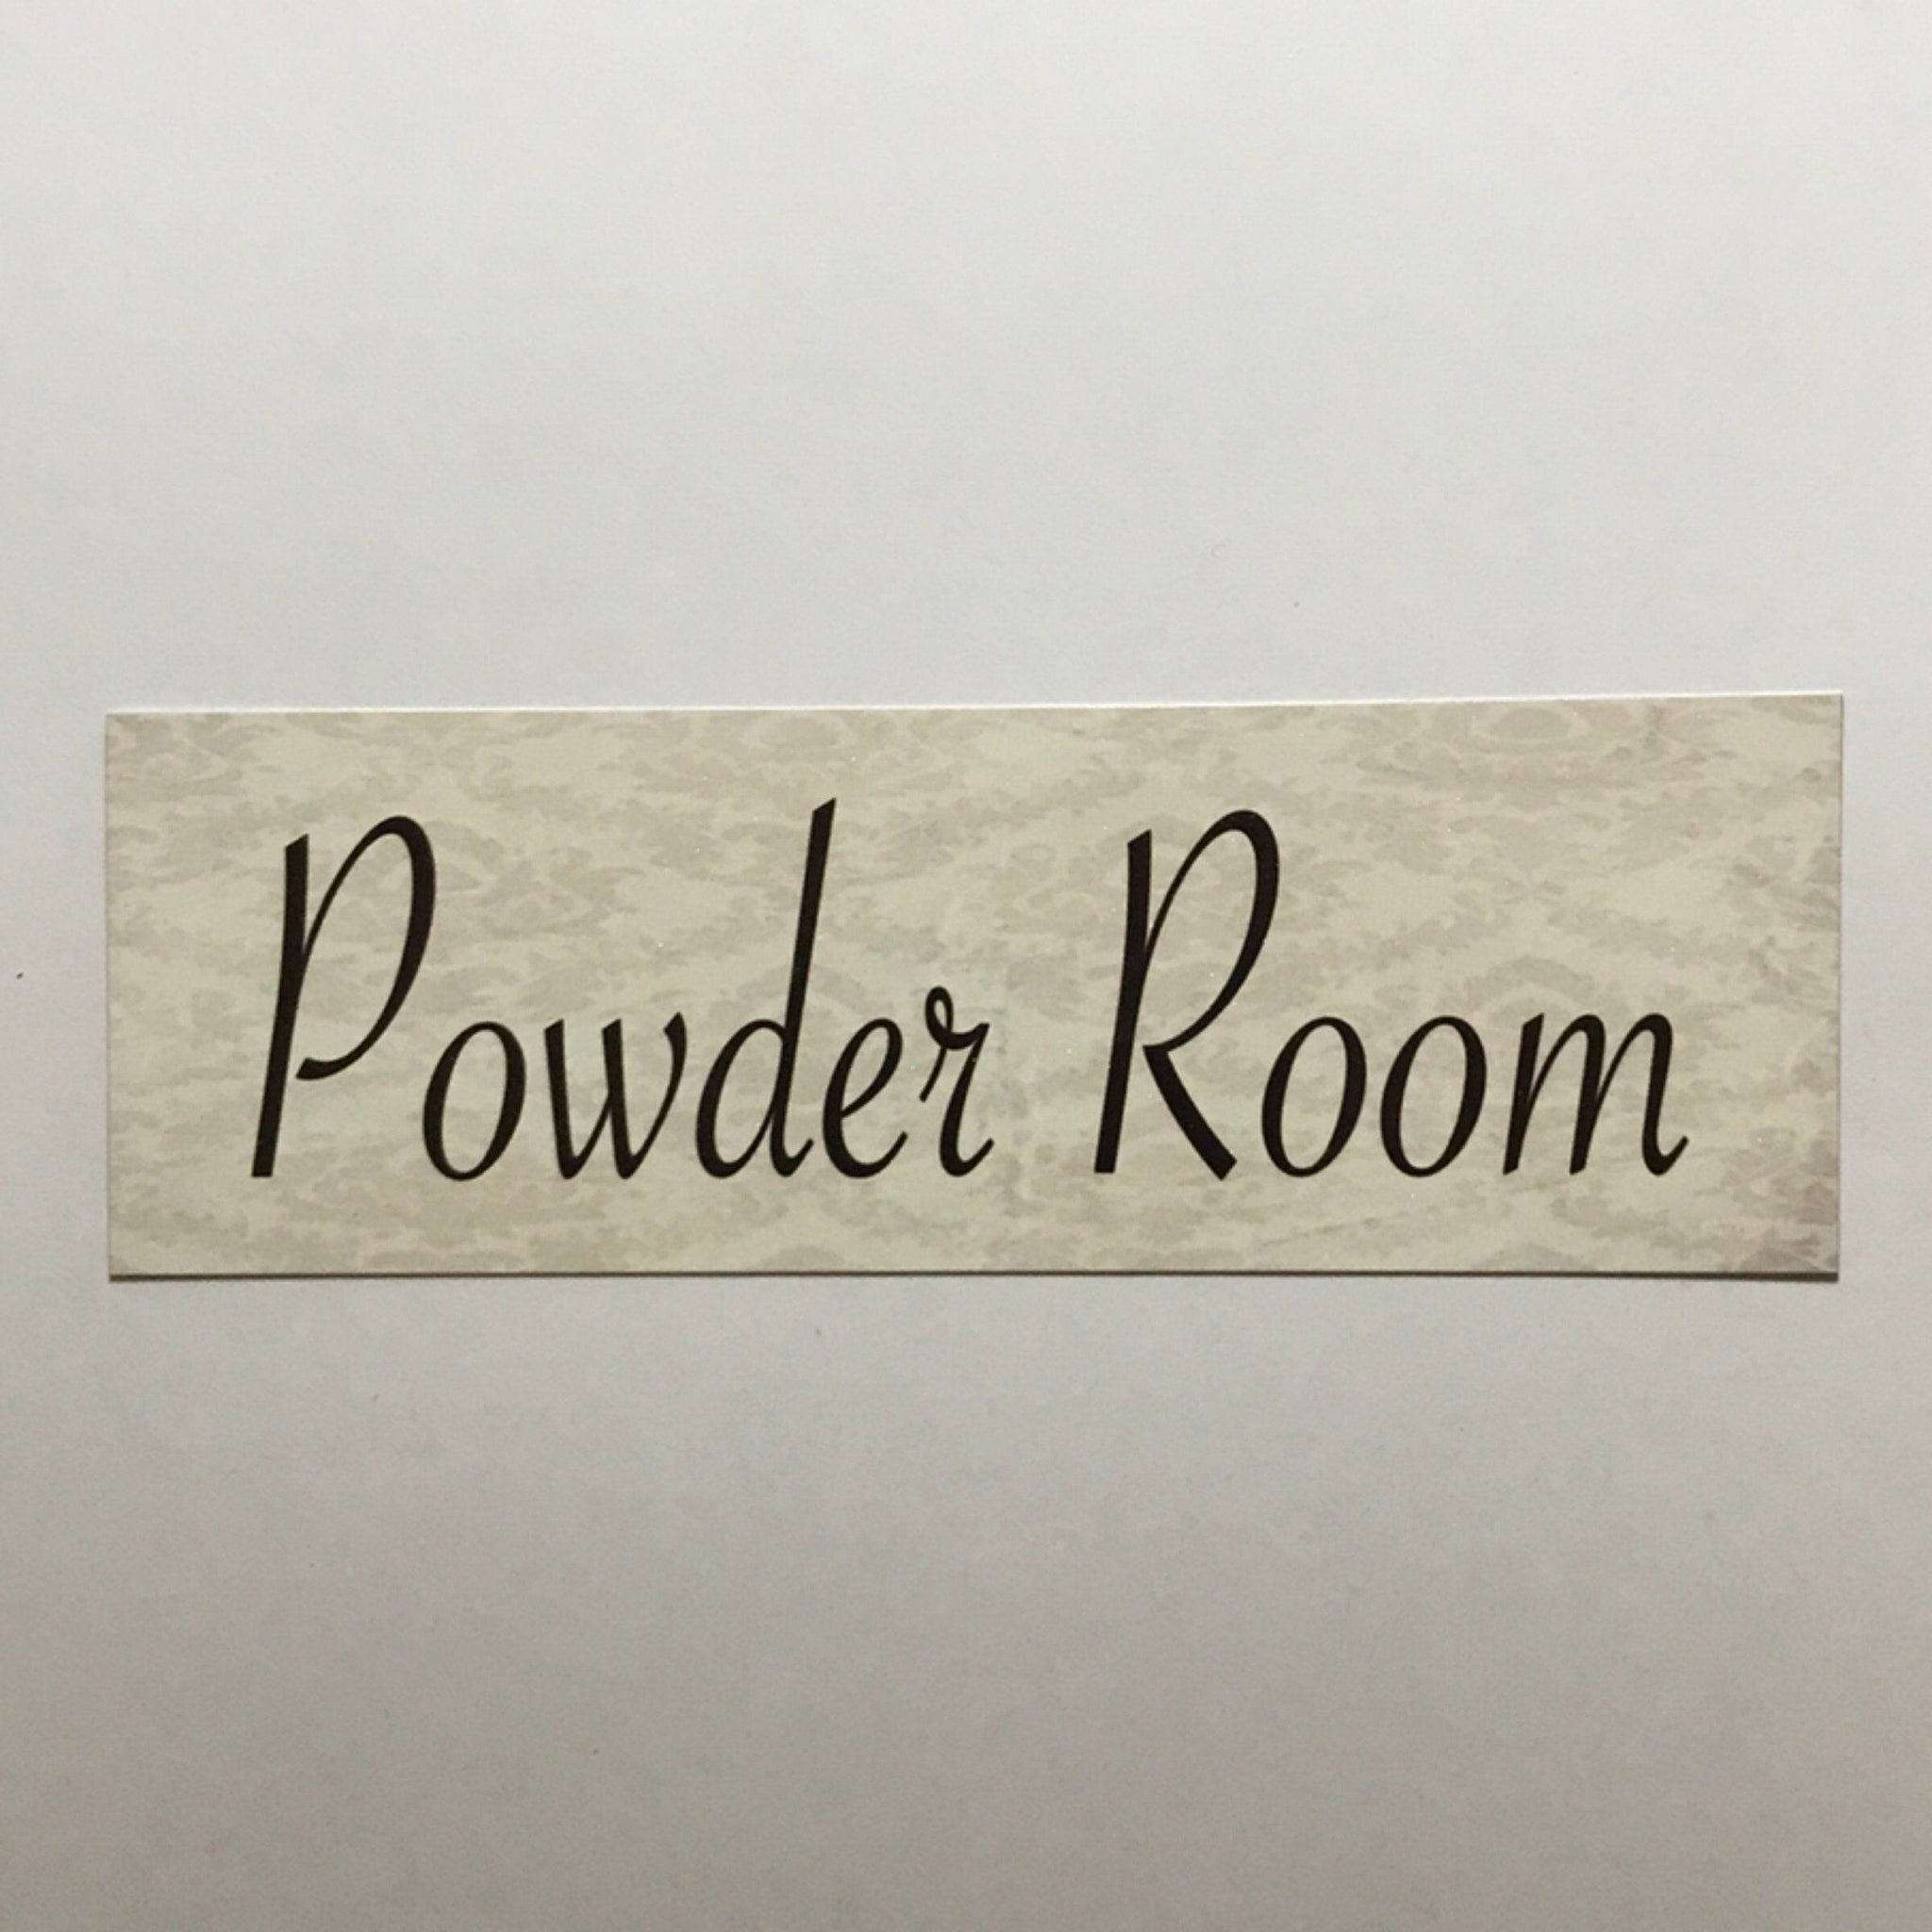 Powder Room Cream Sign Plaque or Hanging - The Renmy Store